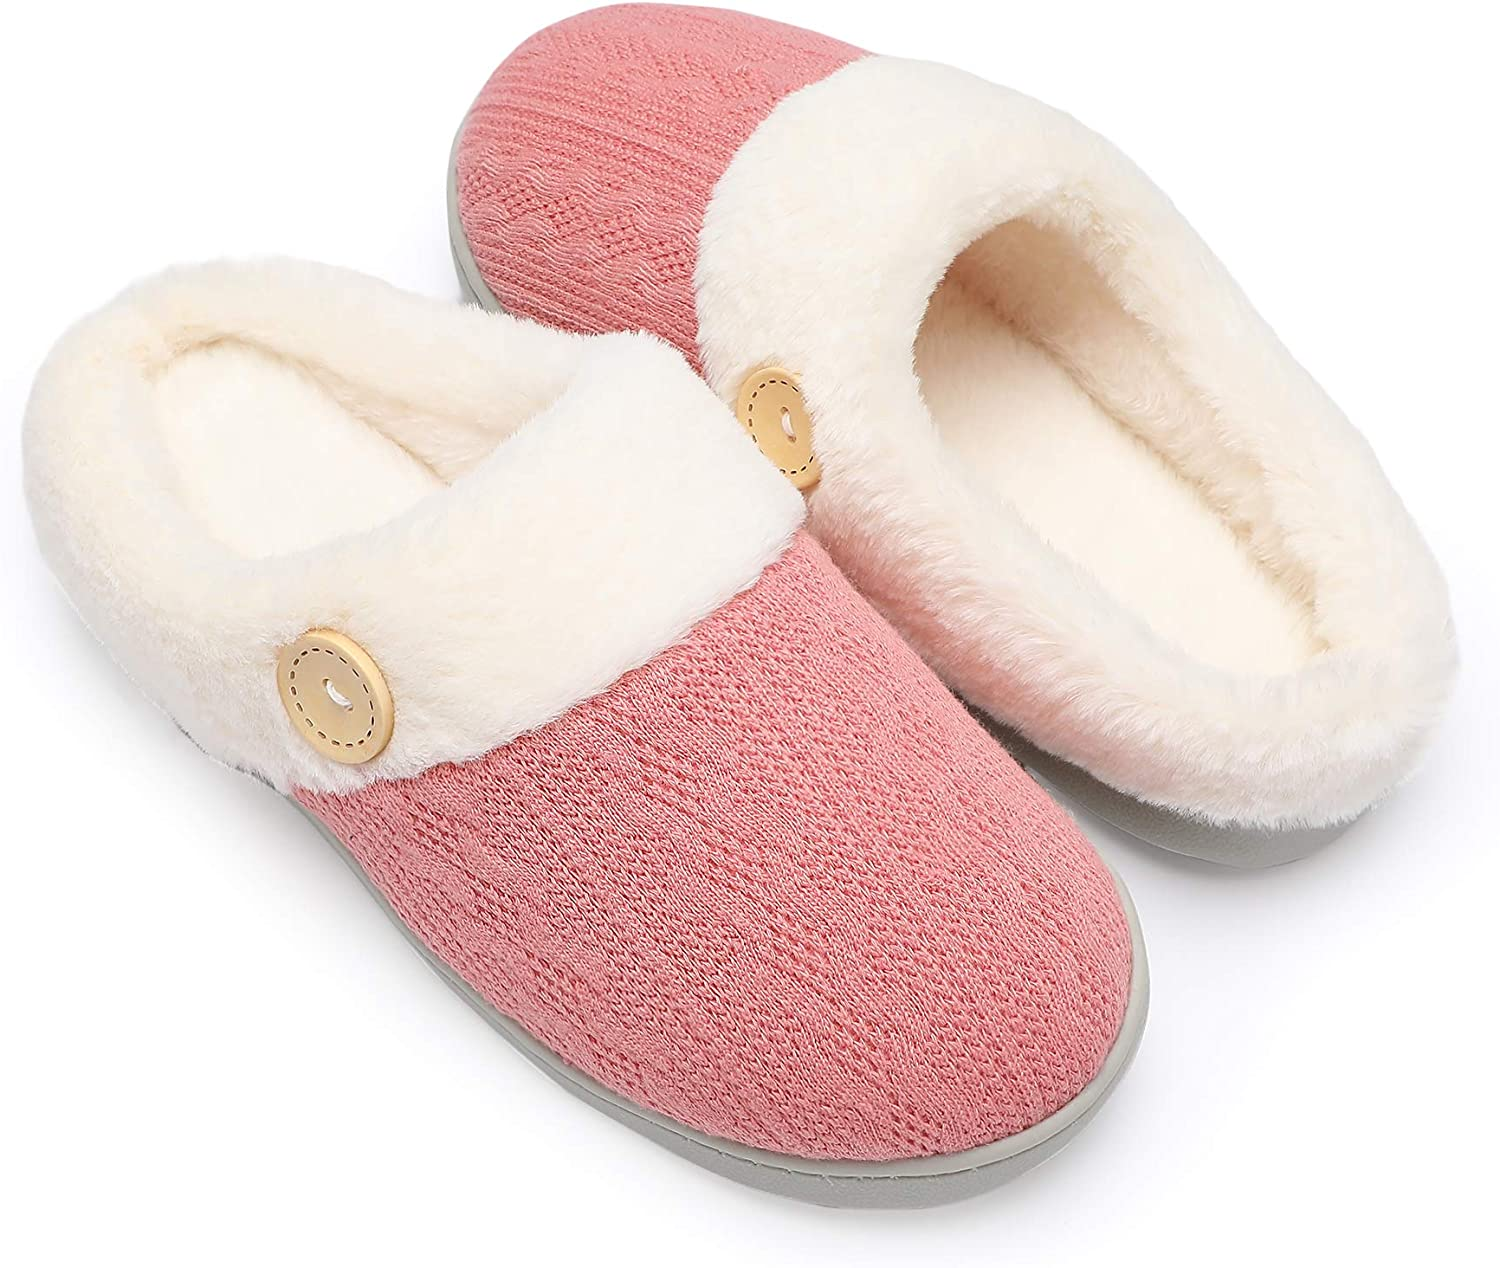 Chantomoo Womens Slipper Warm Comfy Memory Foam House Slippers Knitted Shoes Faux Fur Lined Anti-Skid Rubber Sole Bedroom Cozy Indoor Outdoor Slippers